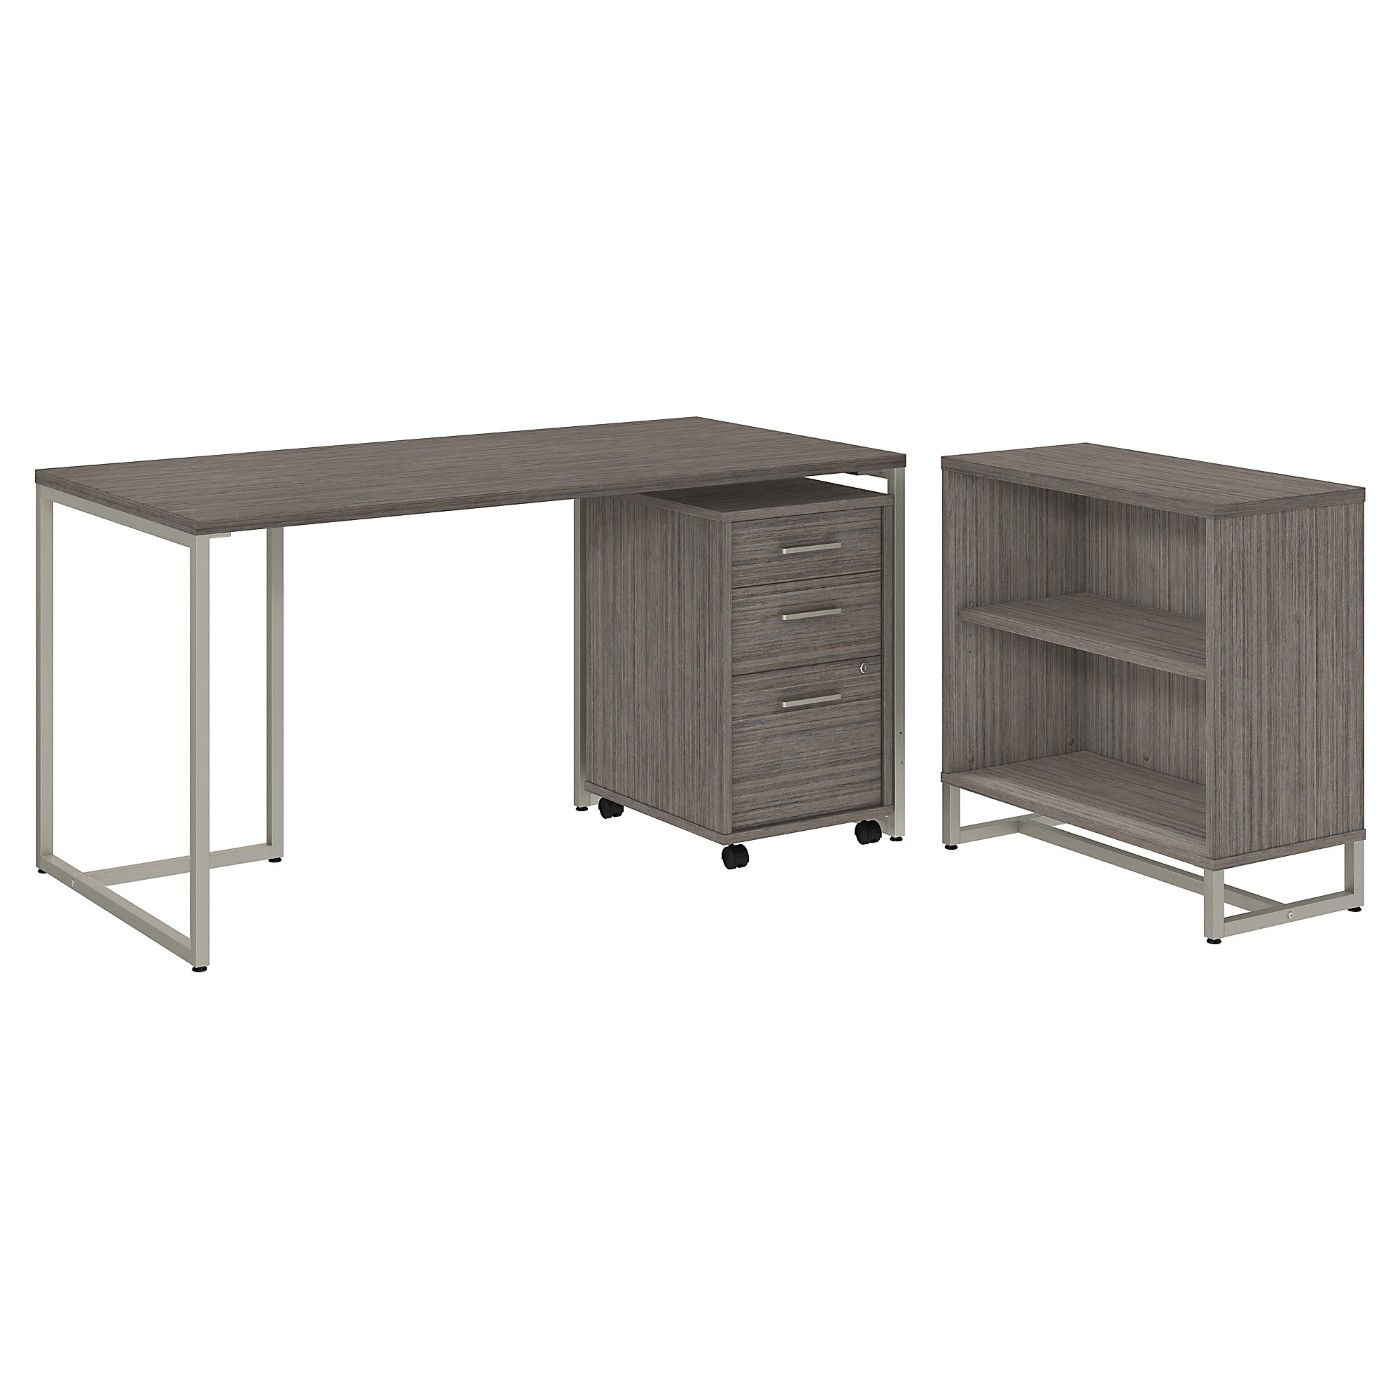 OFFICE BY KATHY IRELAND� METHOD 60W TABLE DESK WITH BOOKCASE AND MOBILE FILE CABINET. FREE SHIPPING